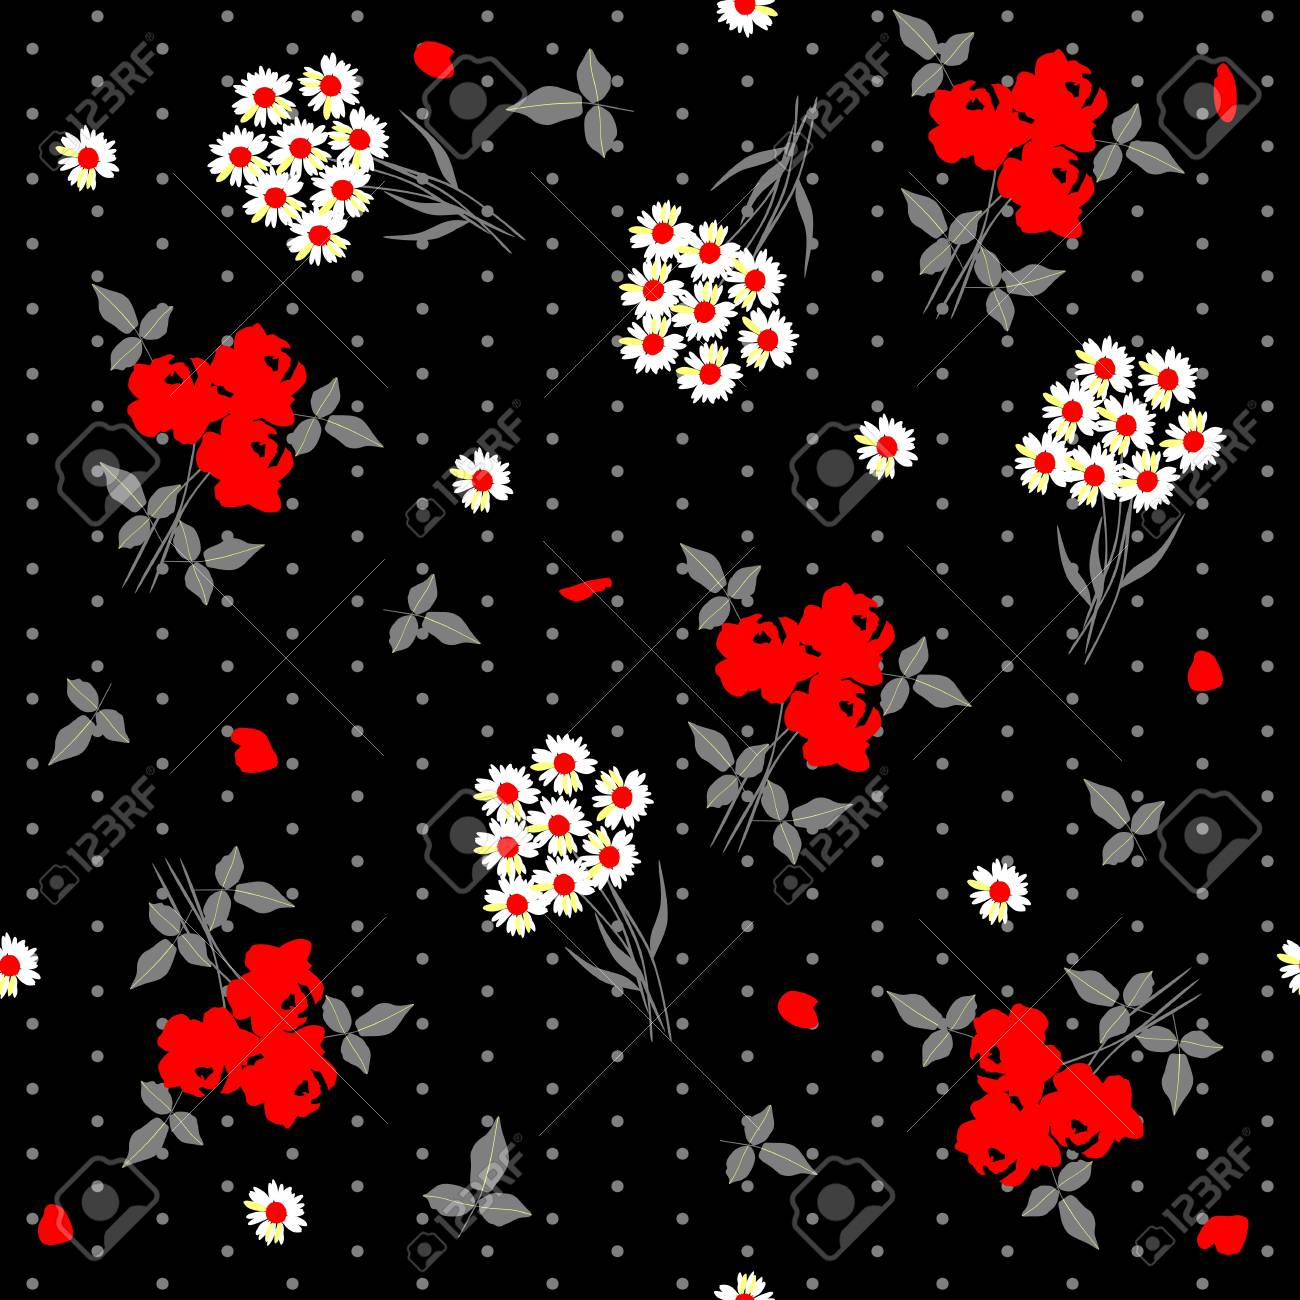 Seamless Floral Pattern With Bunch Of Daisy Flowers And Bouquets